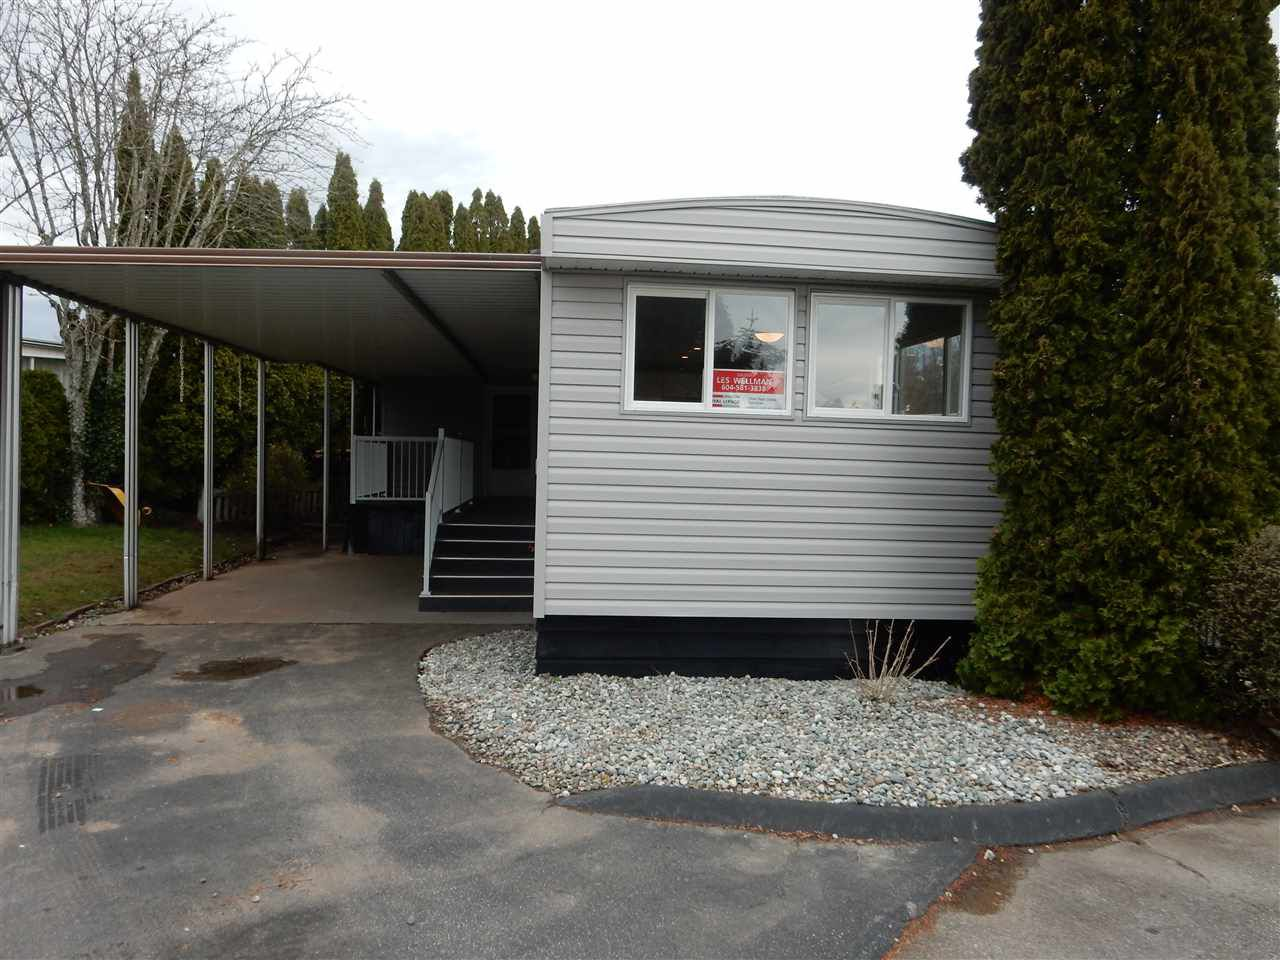 "Main Photo: 101 1840 160 Street in Surrey: King George Corridor Manufactured Home for sale in ""Breakaway Bays"" (South Surrey White Rock)  : MLS®# R2043058"